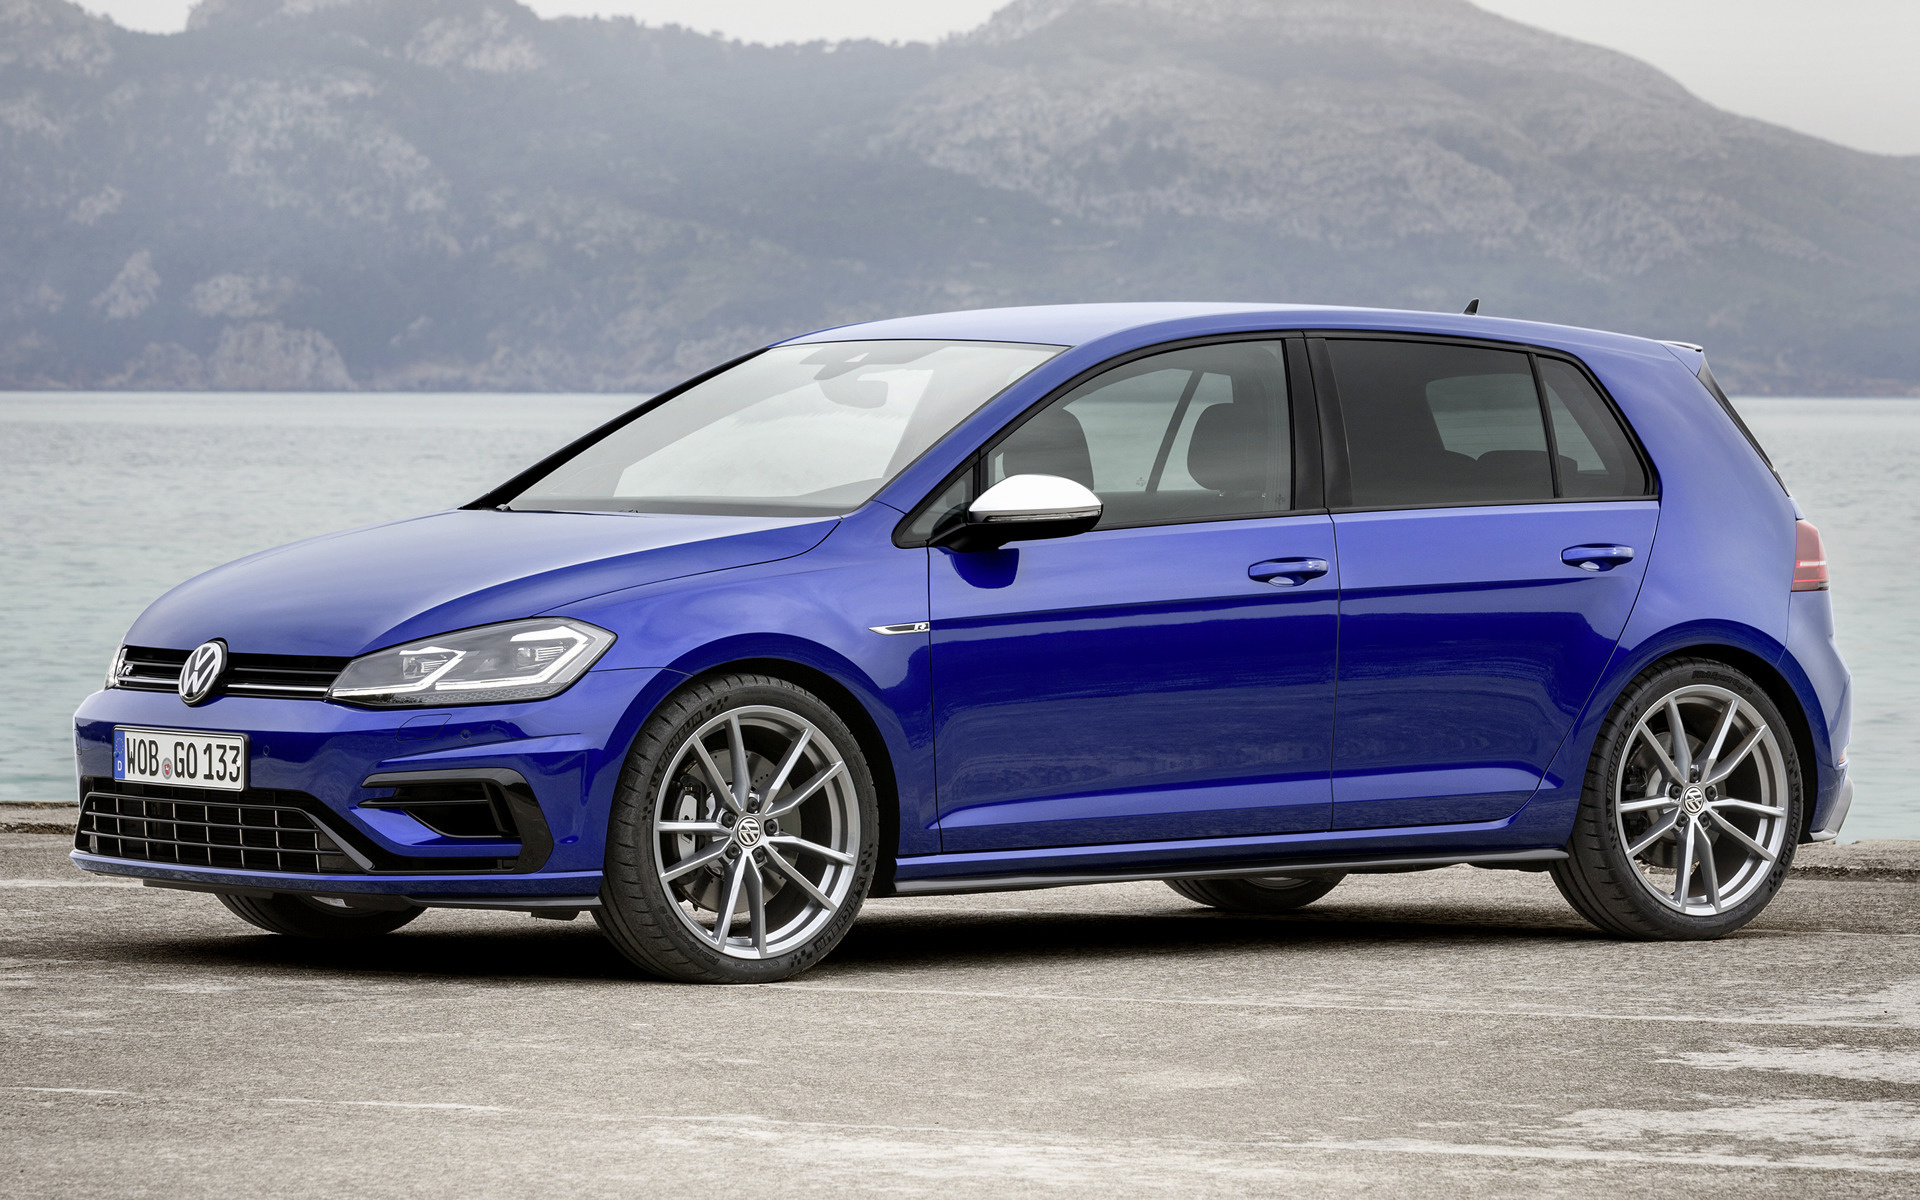 Volkswagen Golf R 5 Door 2017 Wallpapers And HD Images